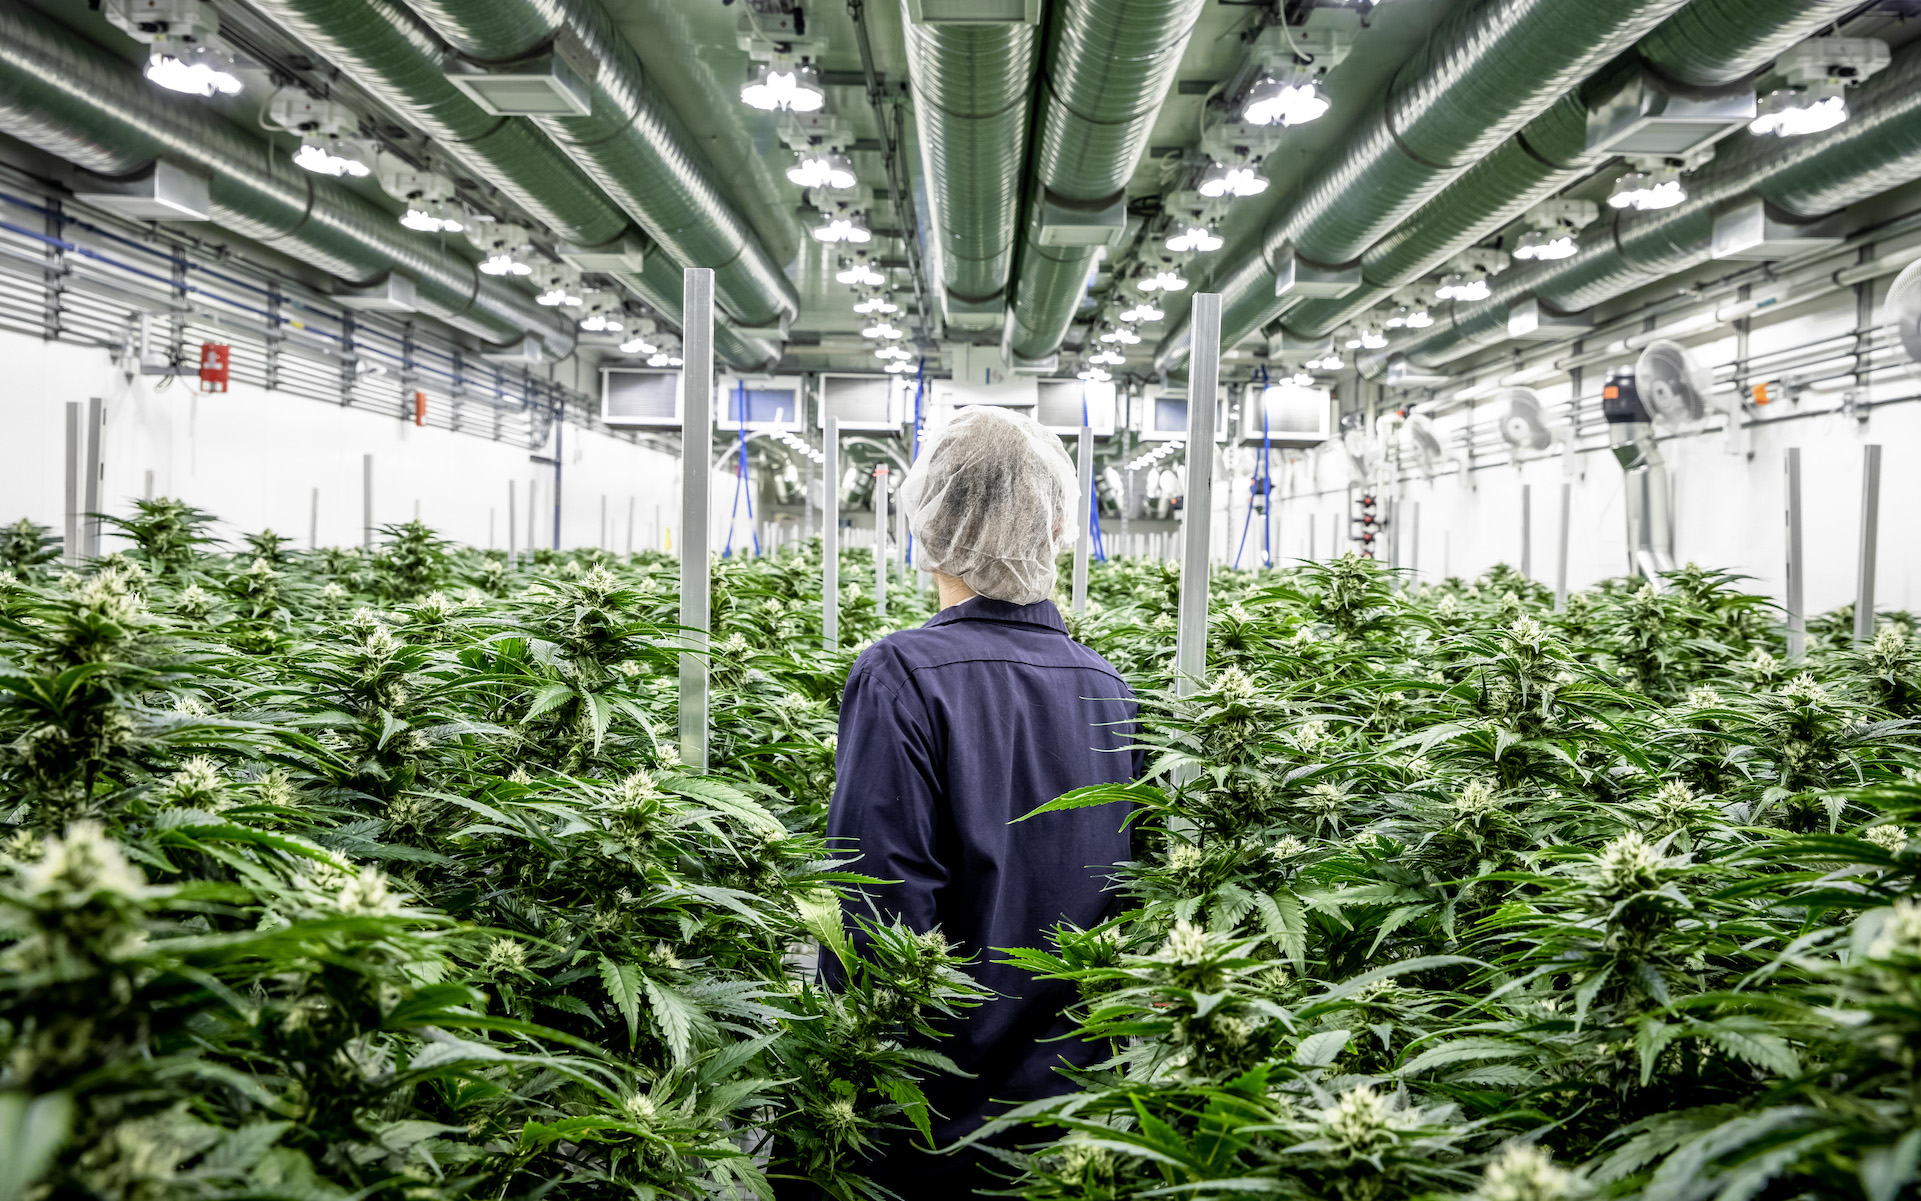 Top Leaf Master Grower in cannabis growing facility alberta